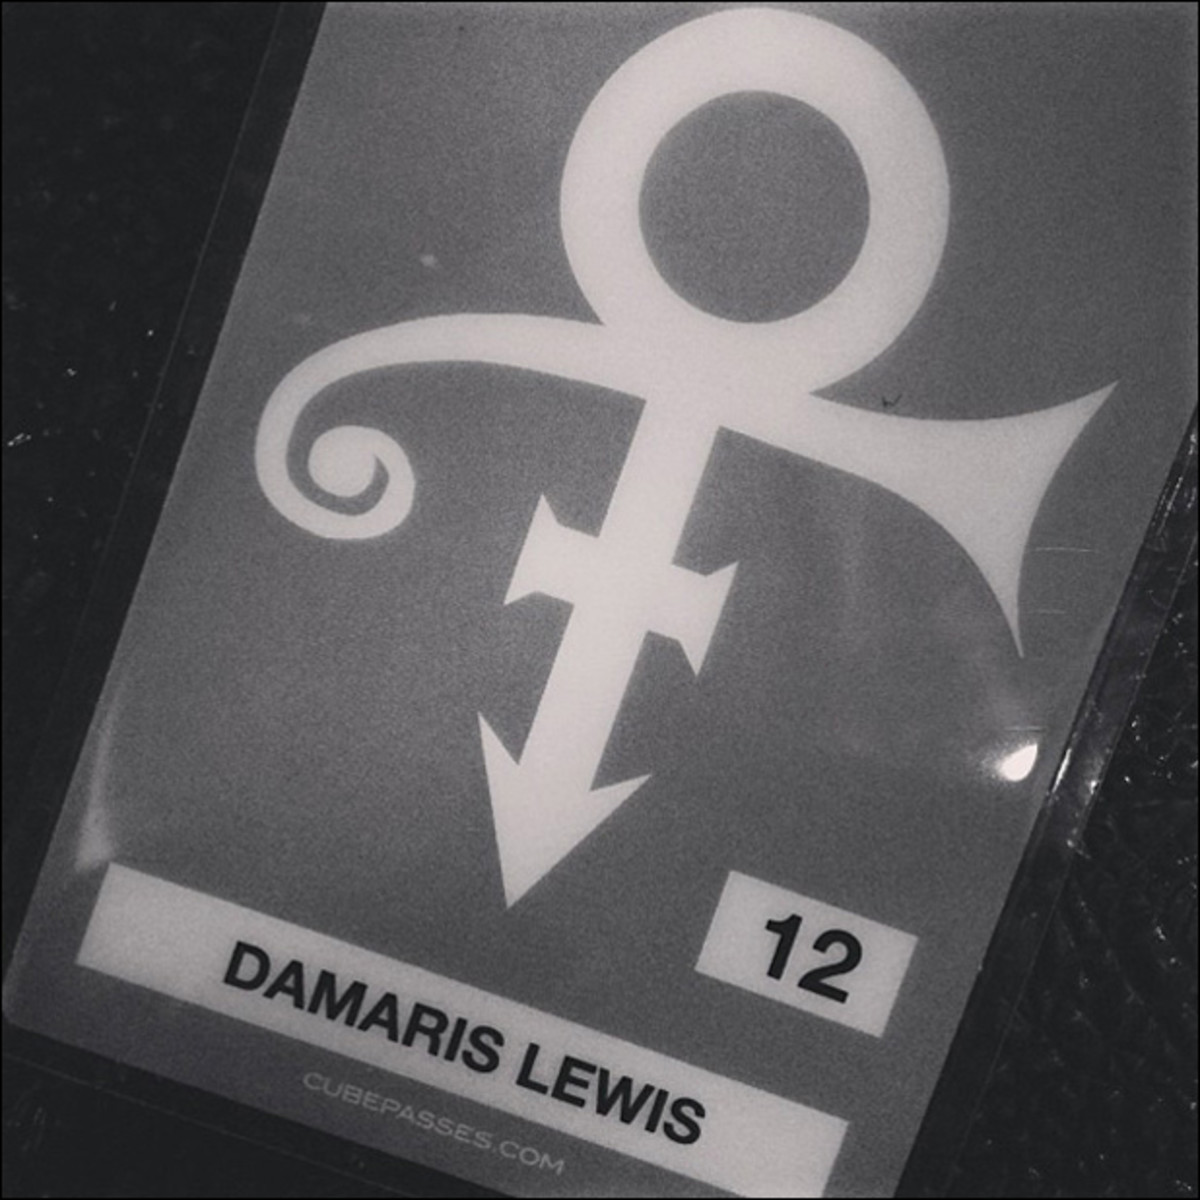 12/27, 5 pm: Ready to rock out with Prince and my purple family tonight. Mohegan Sun, let's get funky.